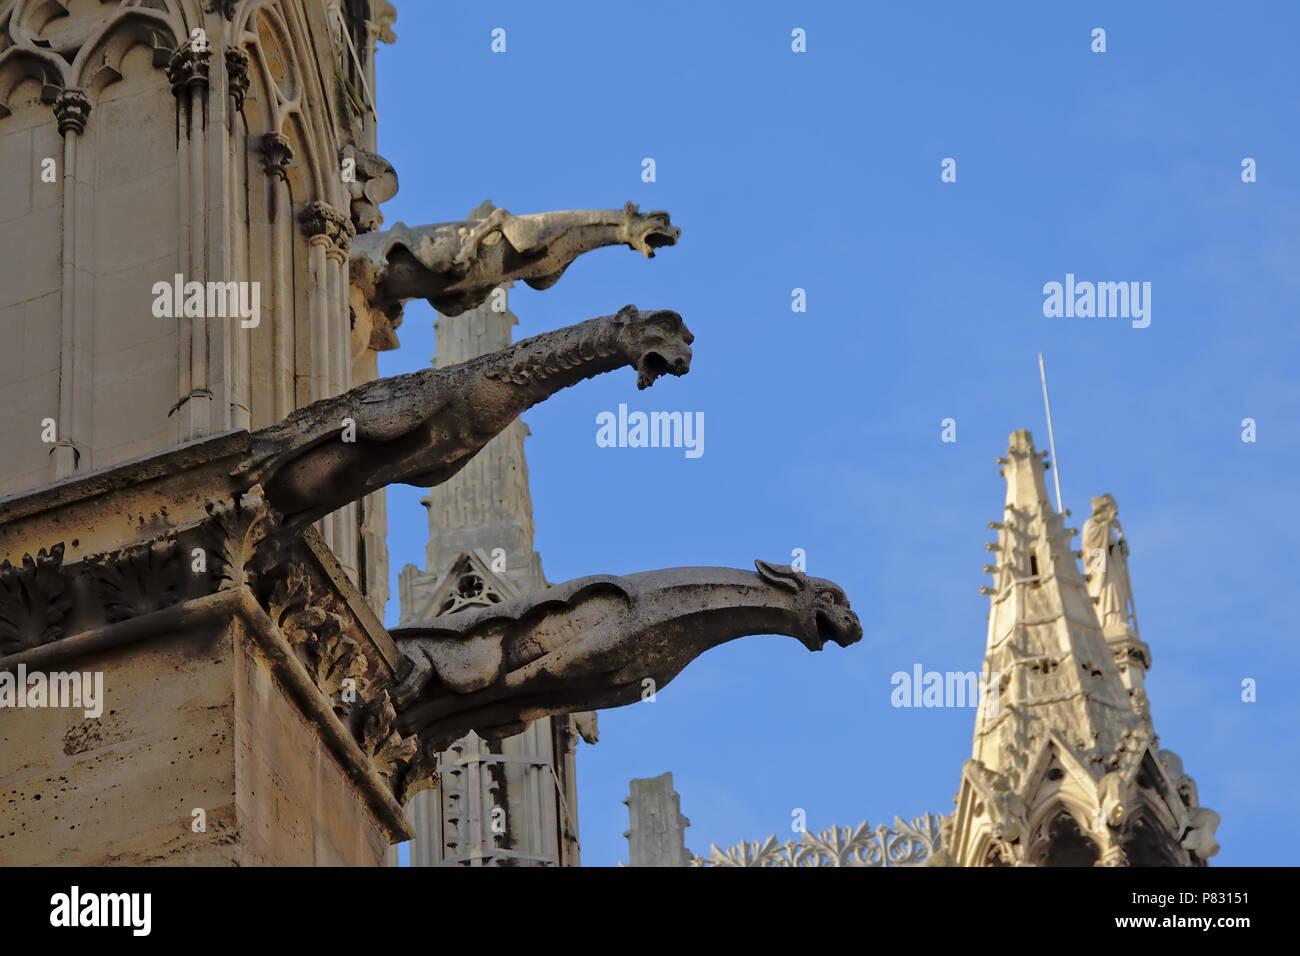 Gargoyles, detail of Cathedral of Notre Dame de Paris on a sunny day with clear blue sky - Stock Image